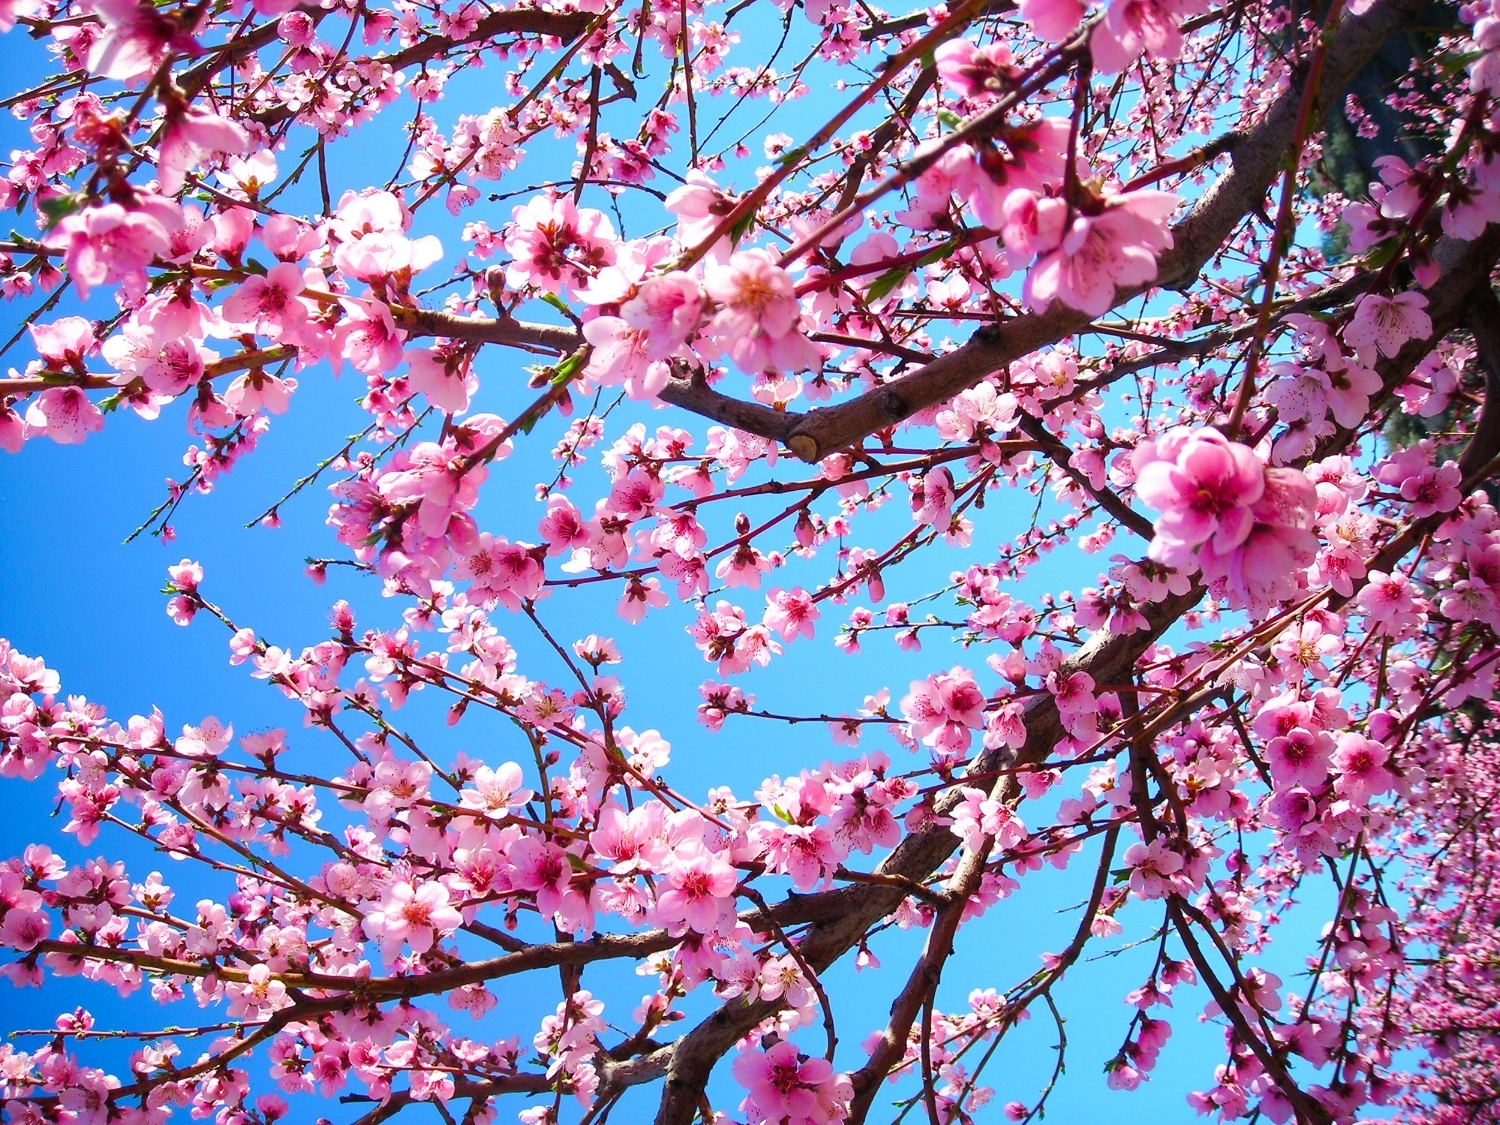 Peach blossoms in spring.